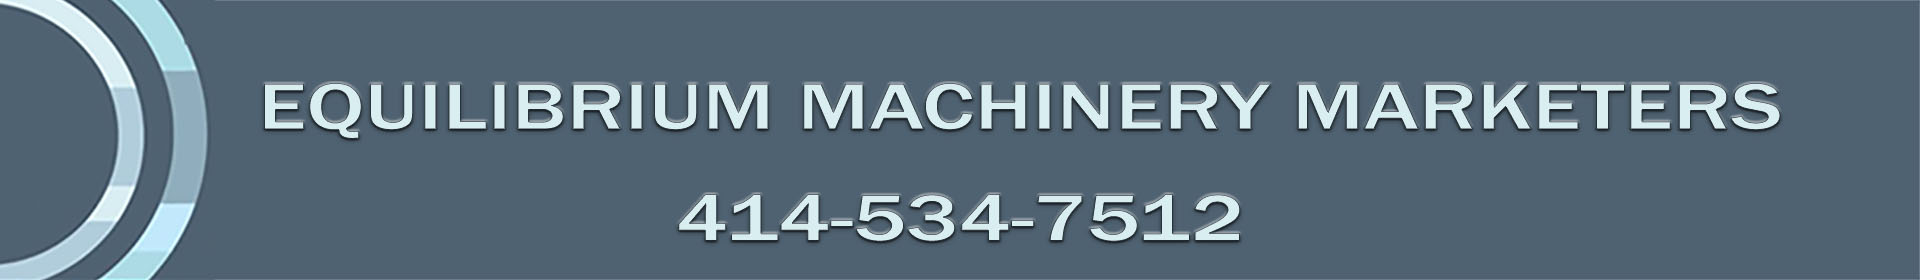 Category: CNC Chip Making Machinery